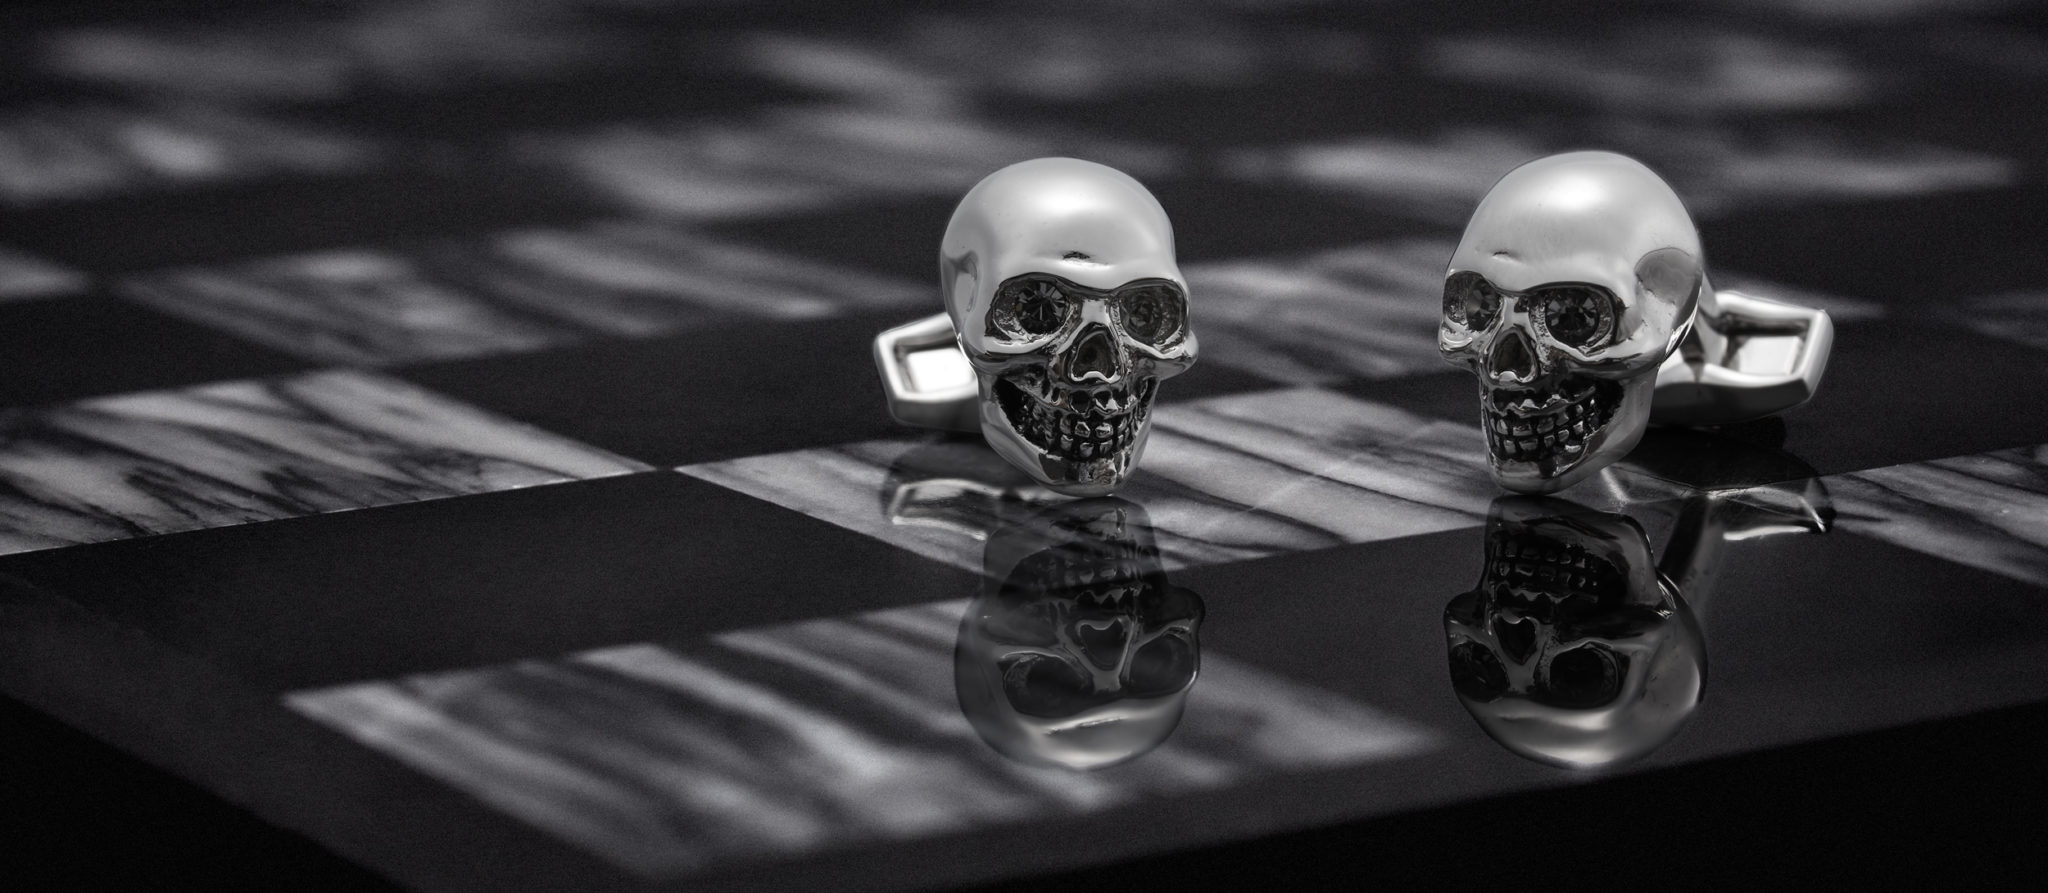 dark and moody marketing photograph of Alexander Mcqueen skull cufflinks on a black and white marble chess board